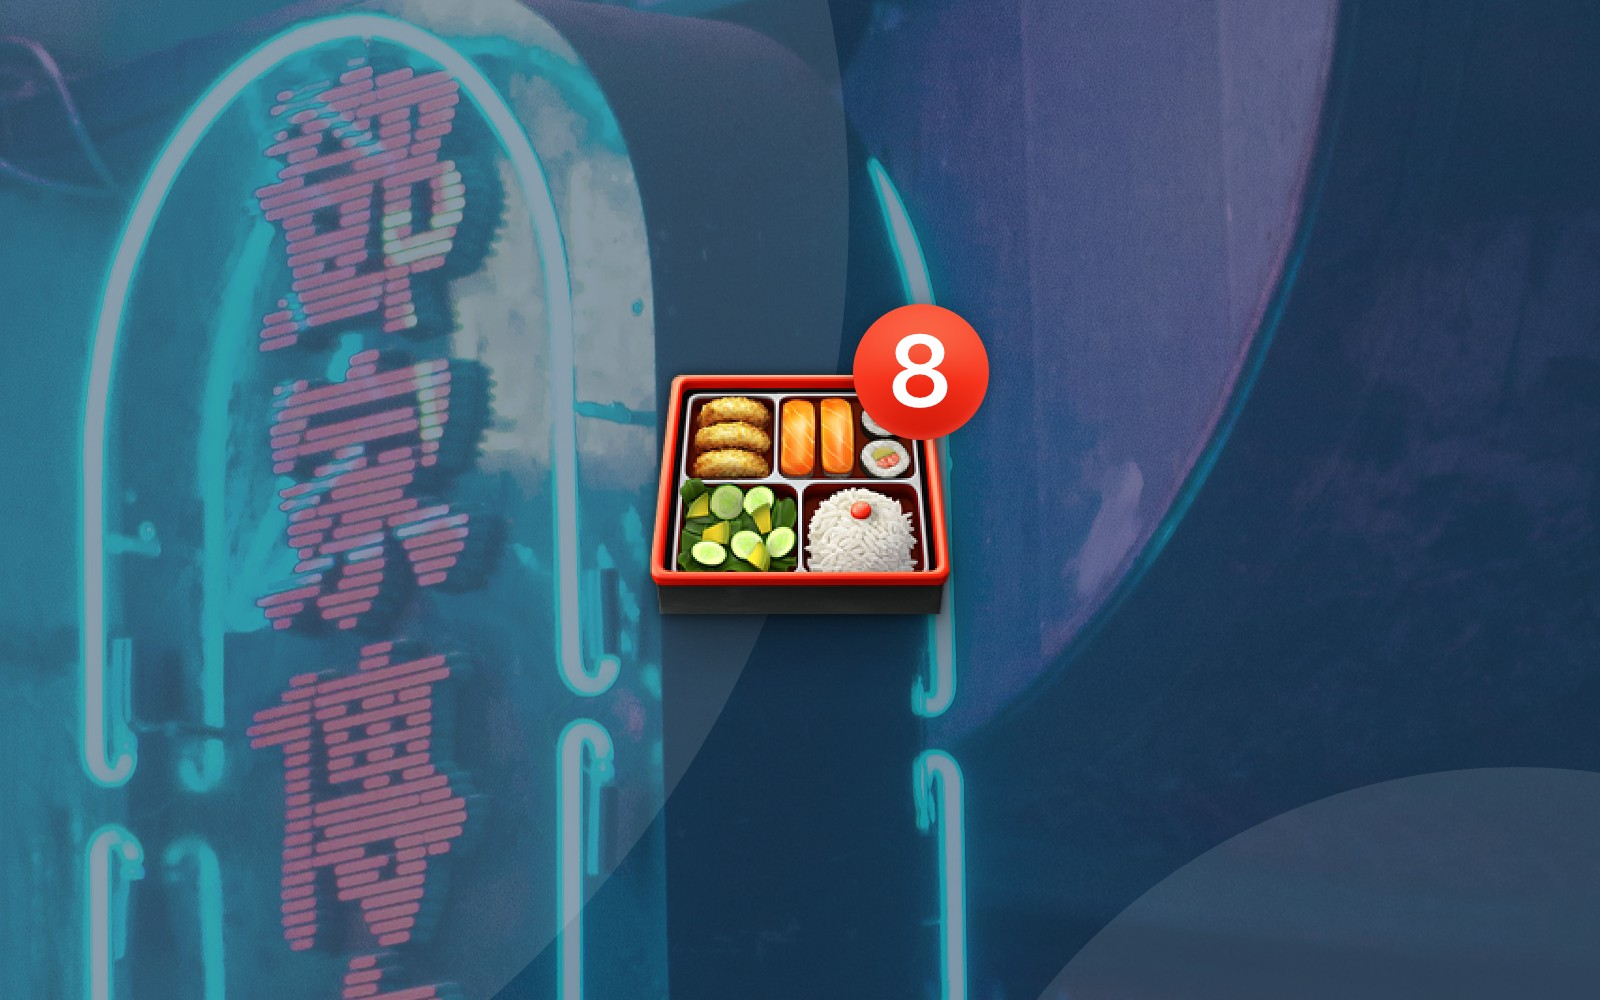 Bento box emoji with number 8 badge on mountainside with asian text on neon signs background